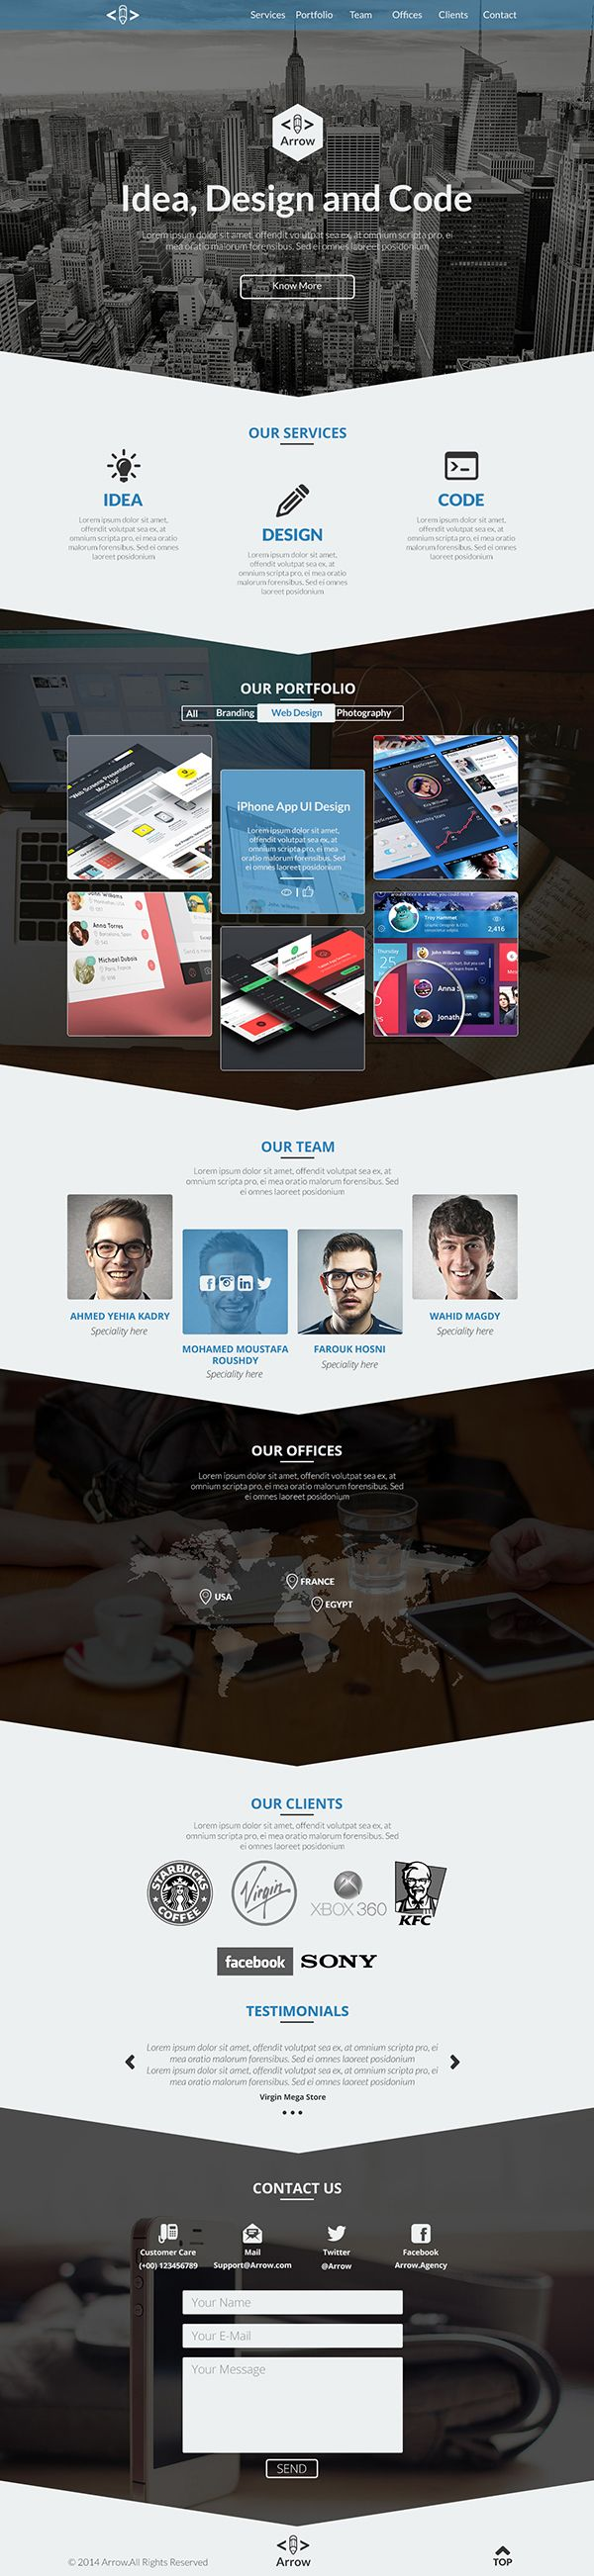 Arrow free one page business portfolio psd template webdesign ui arrow free one page business portfolio psd template wajeb